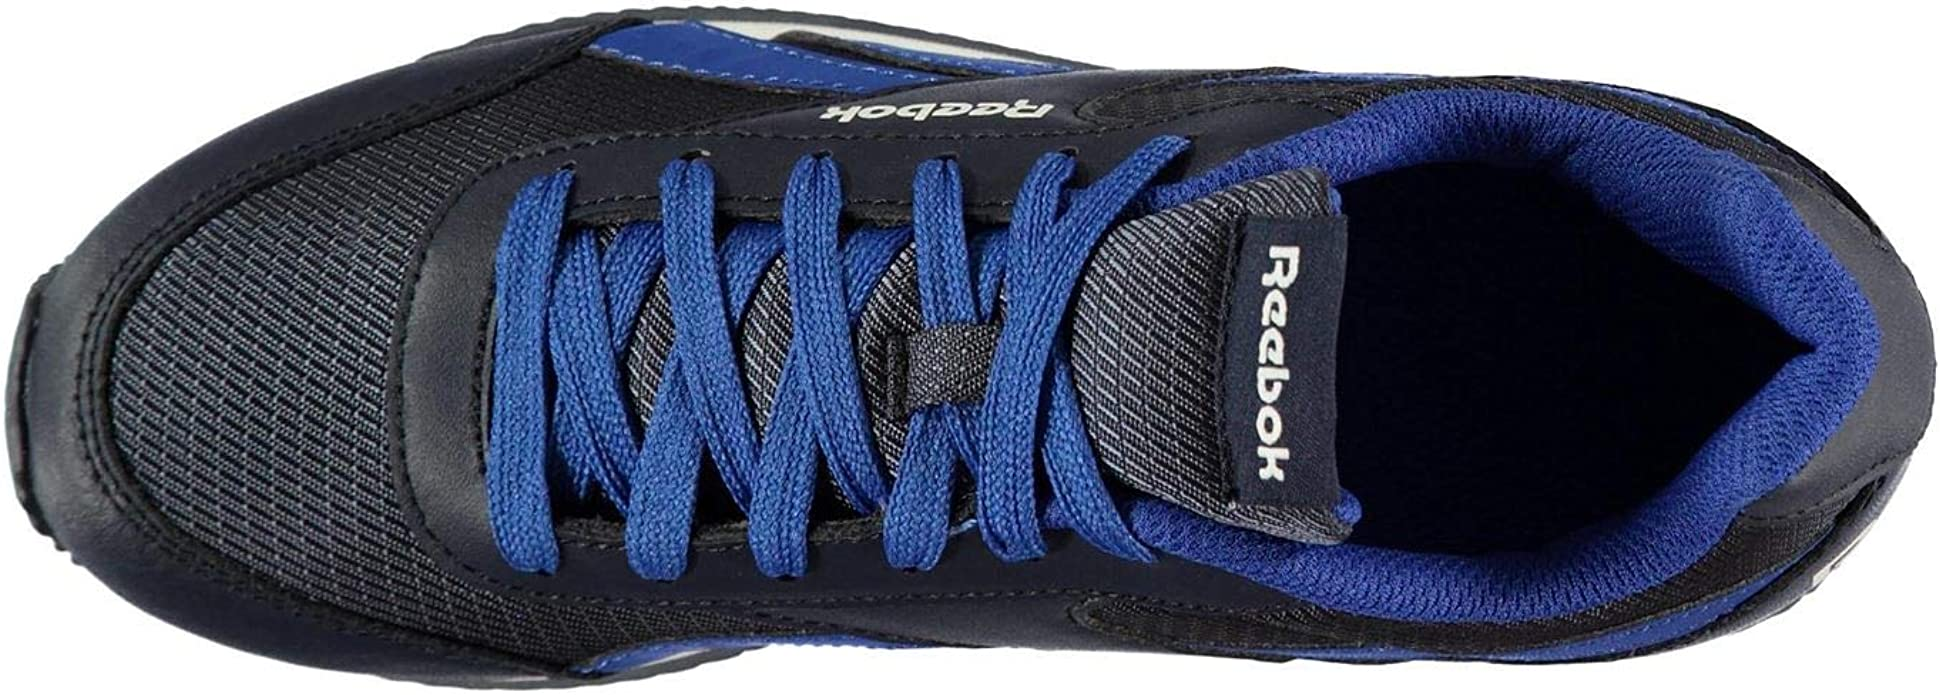 Reebok Girls Classic Jogger RS Childrens Trainers Shoes Footwear Laces Fastened